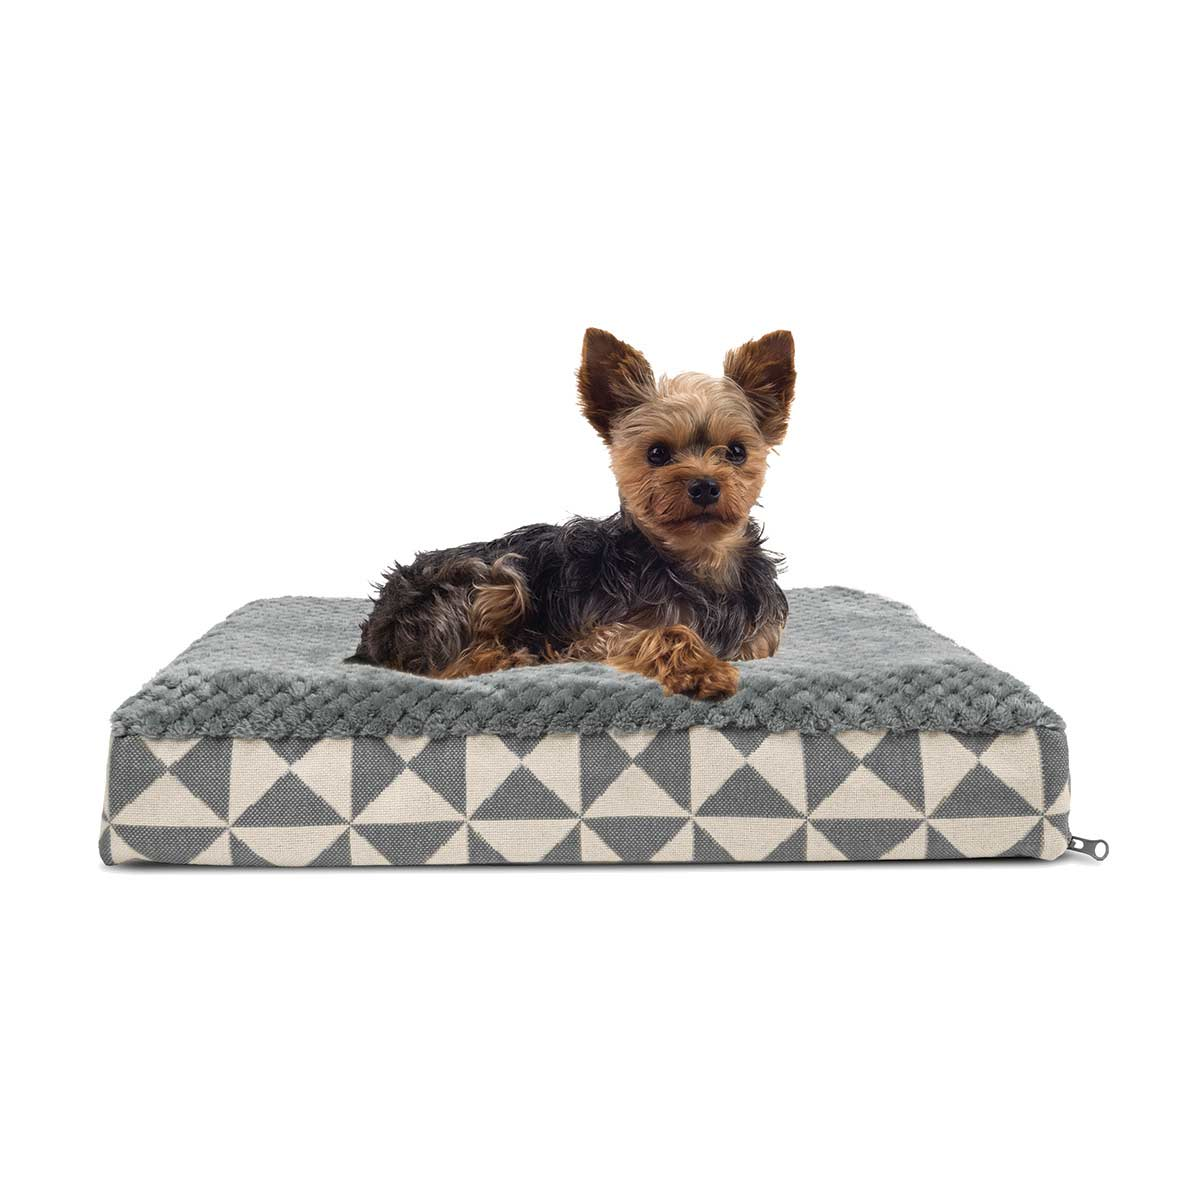 FurHaven NAP Plush Top Deluxe with Memory Foam Ortho Pet Bed Small at Ryan's Pet Supplies